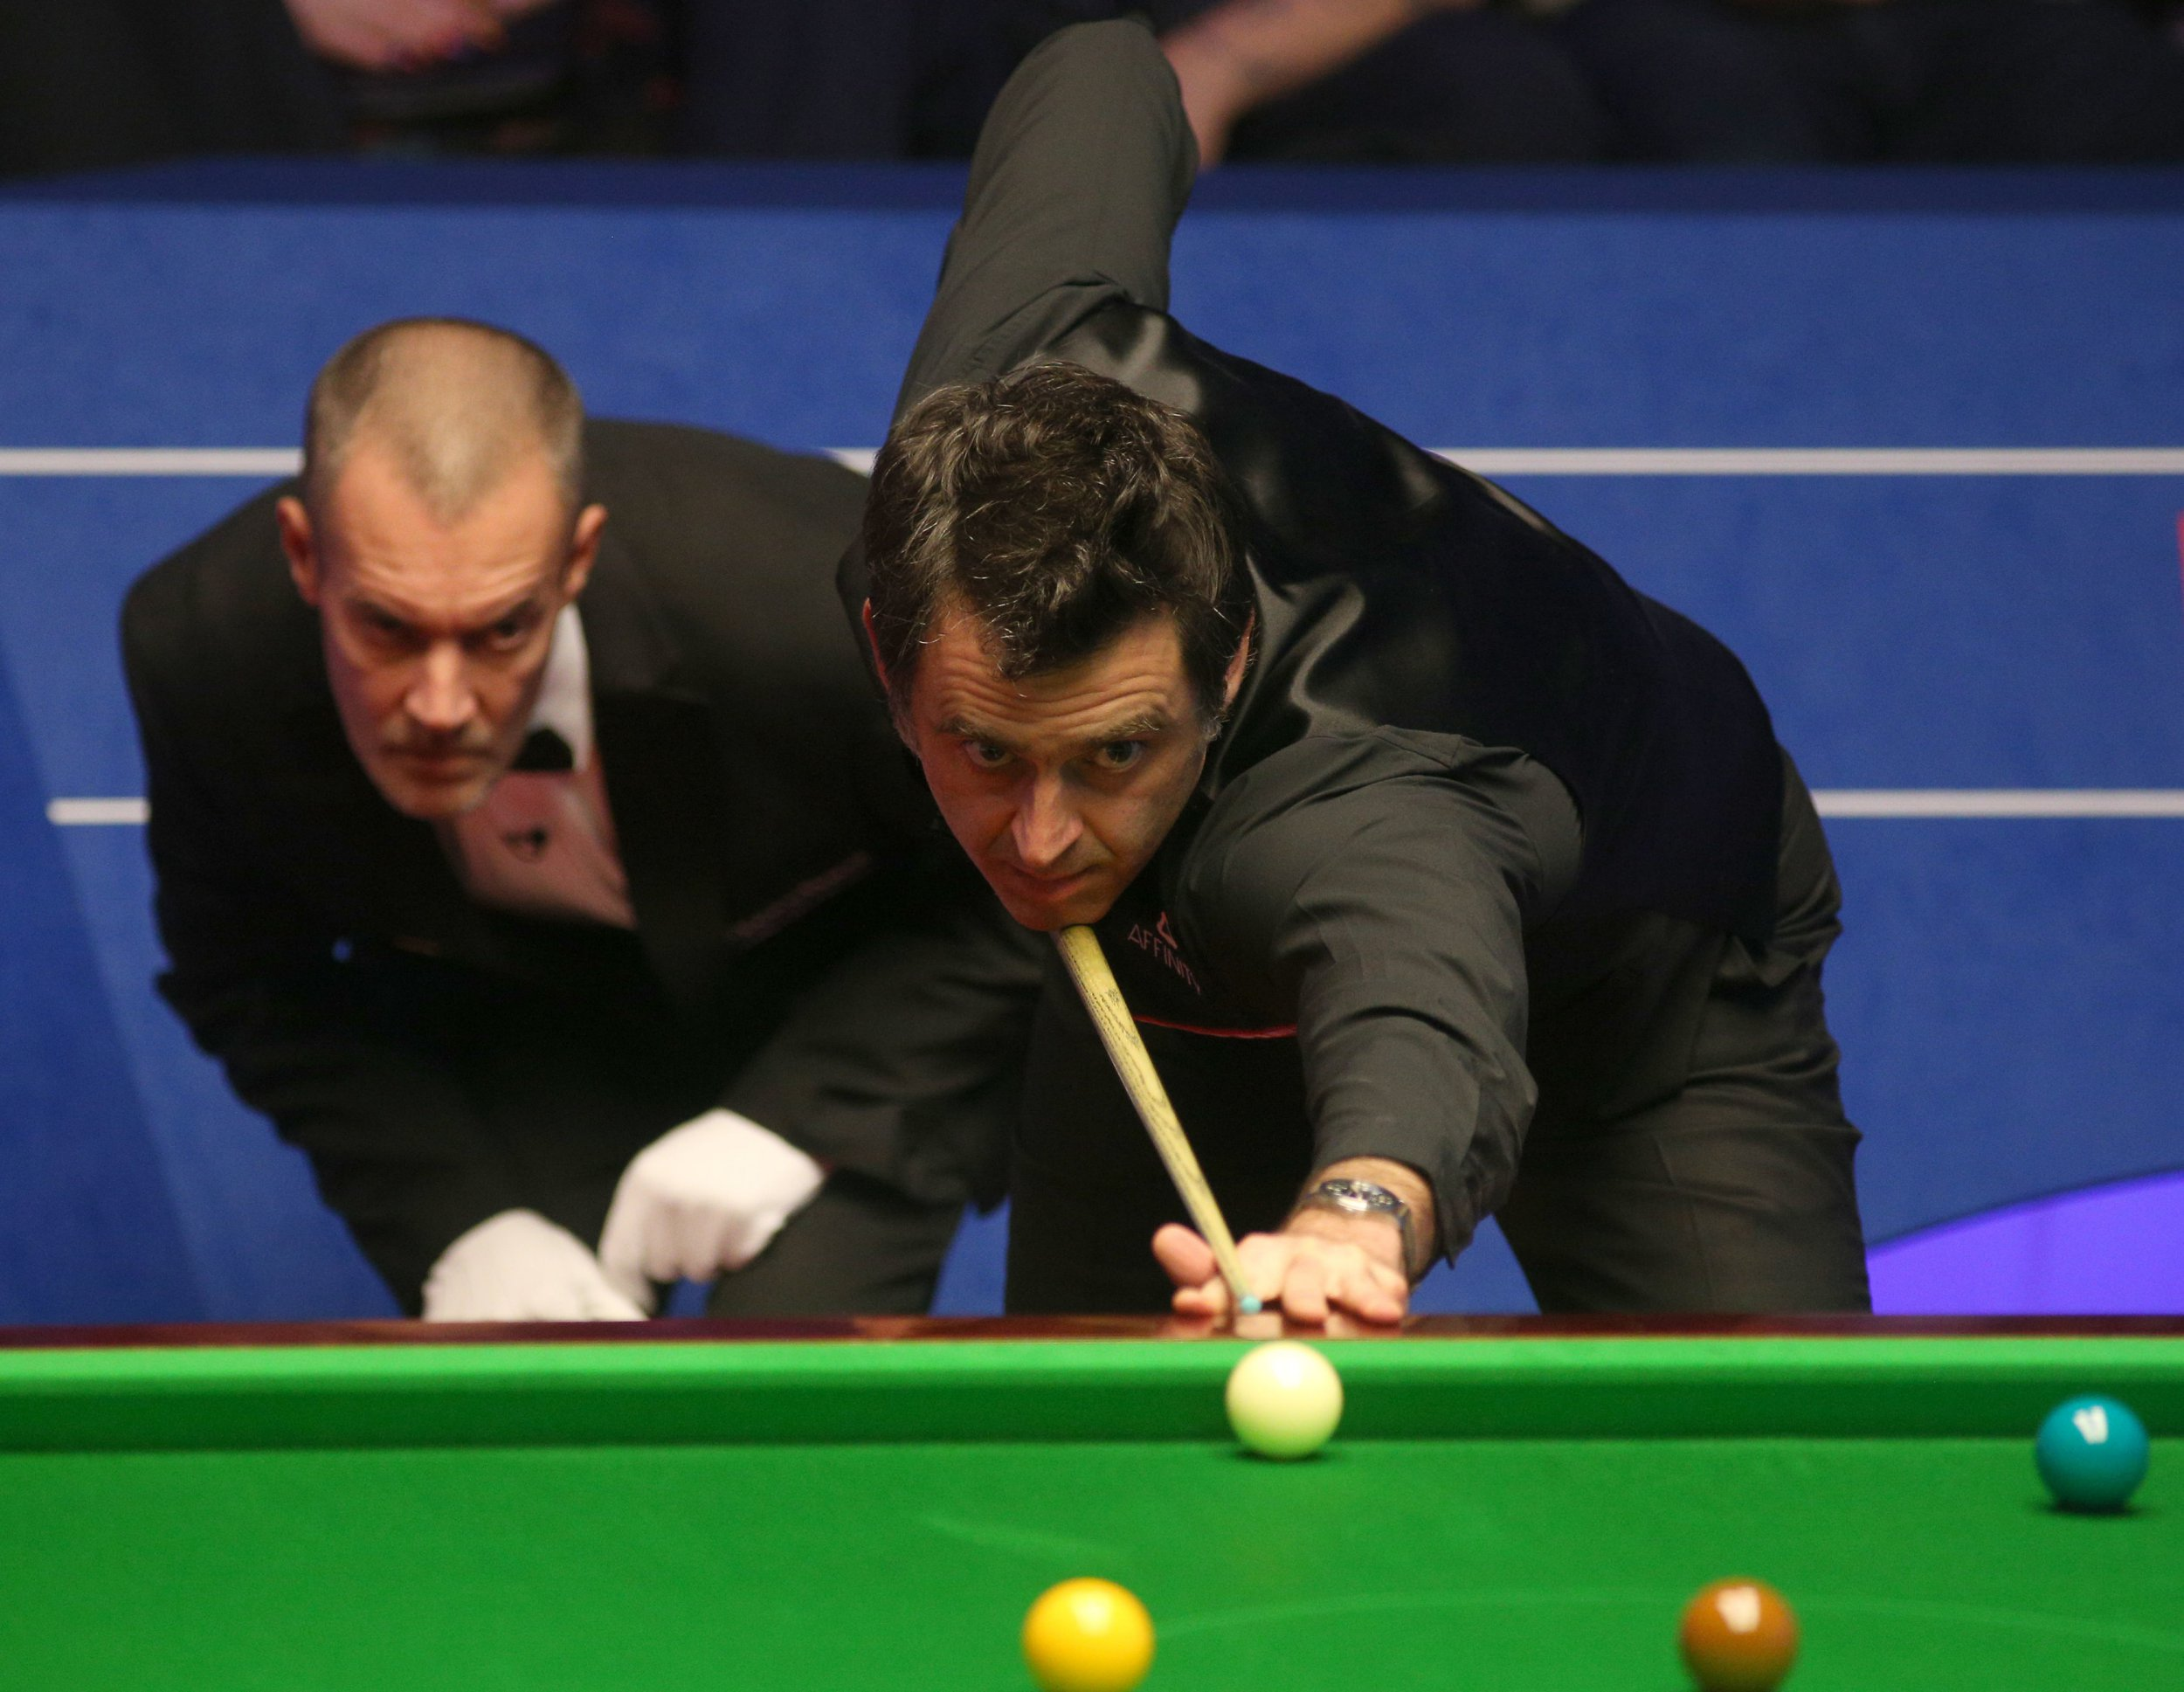 Ronnie O'Sullivan plays a shot as arbitrate Olivier Marteel watches during day 3 of a 2019 Betfred World Championship during The Crucible, Sheffield. PRESS ASSOCIATION Photo. Picture date: Monday Apr 22, 2019. See PA story SNOOKER World. Photo credit should read: Nigel French/PA Wire